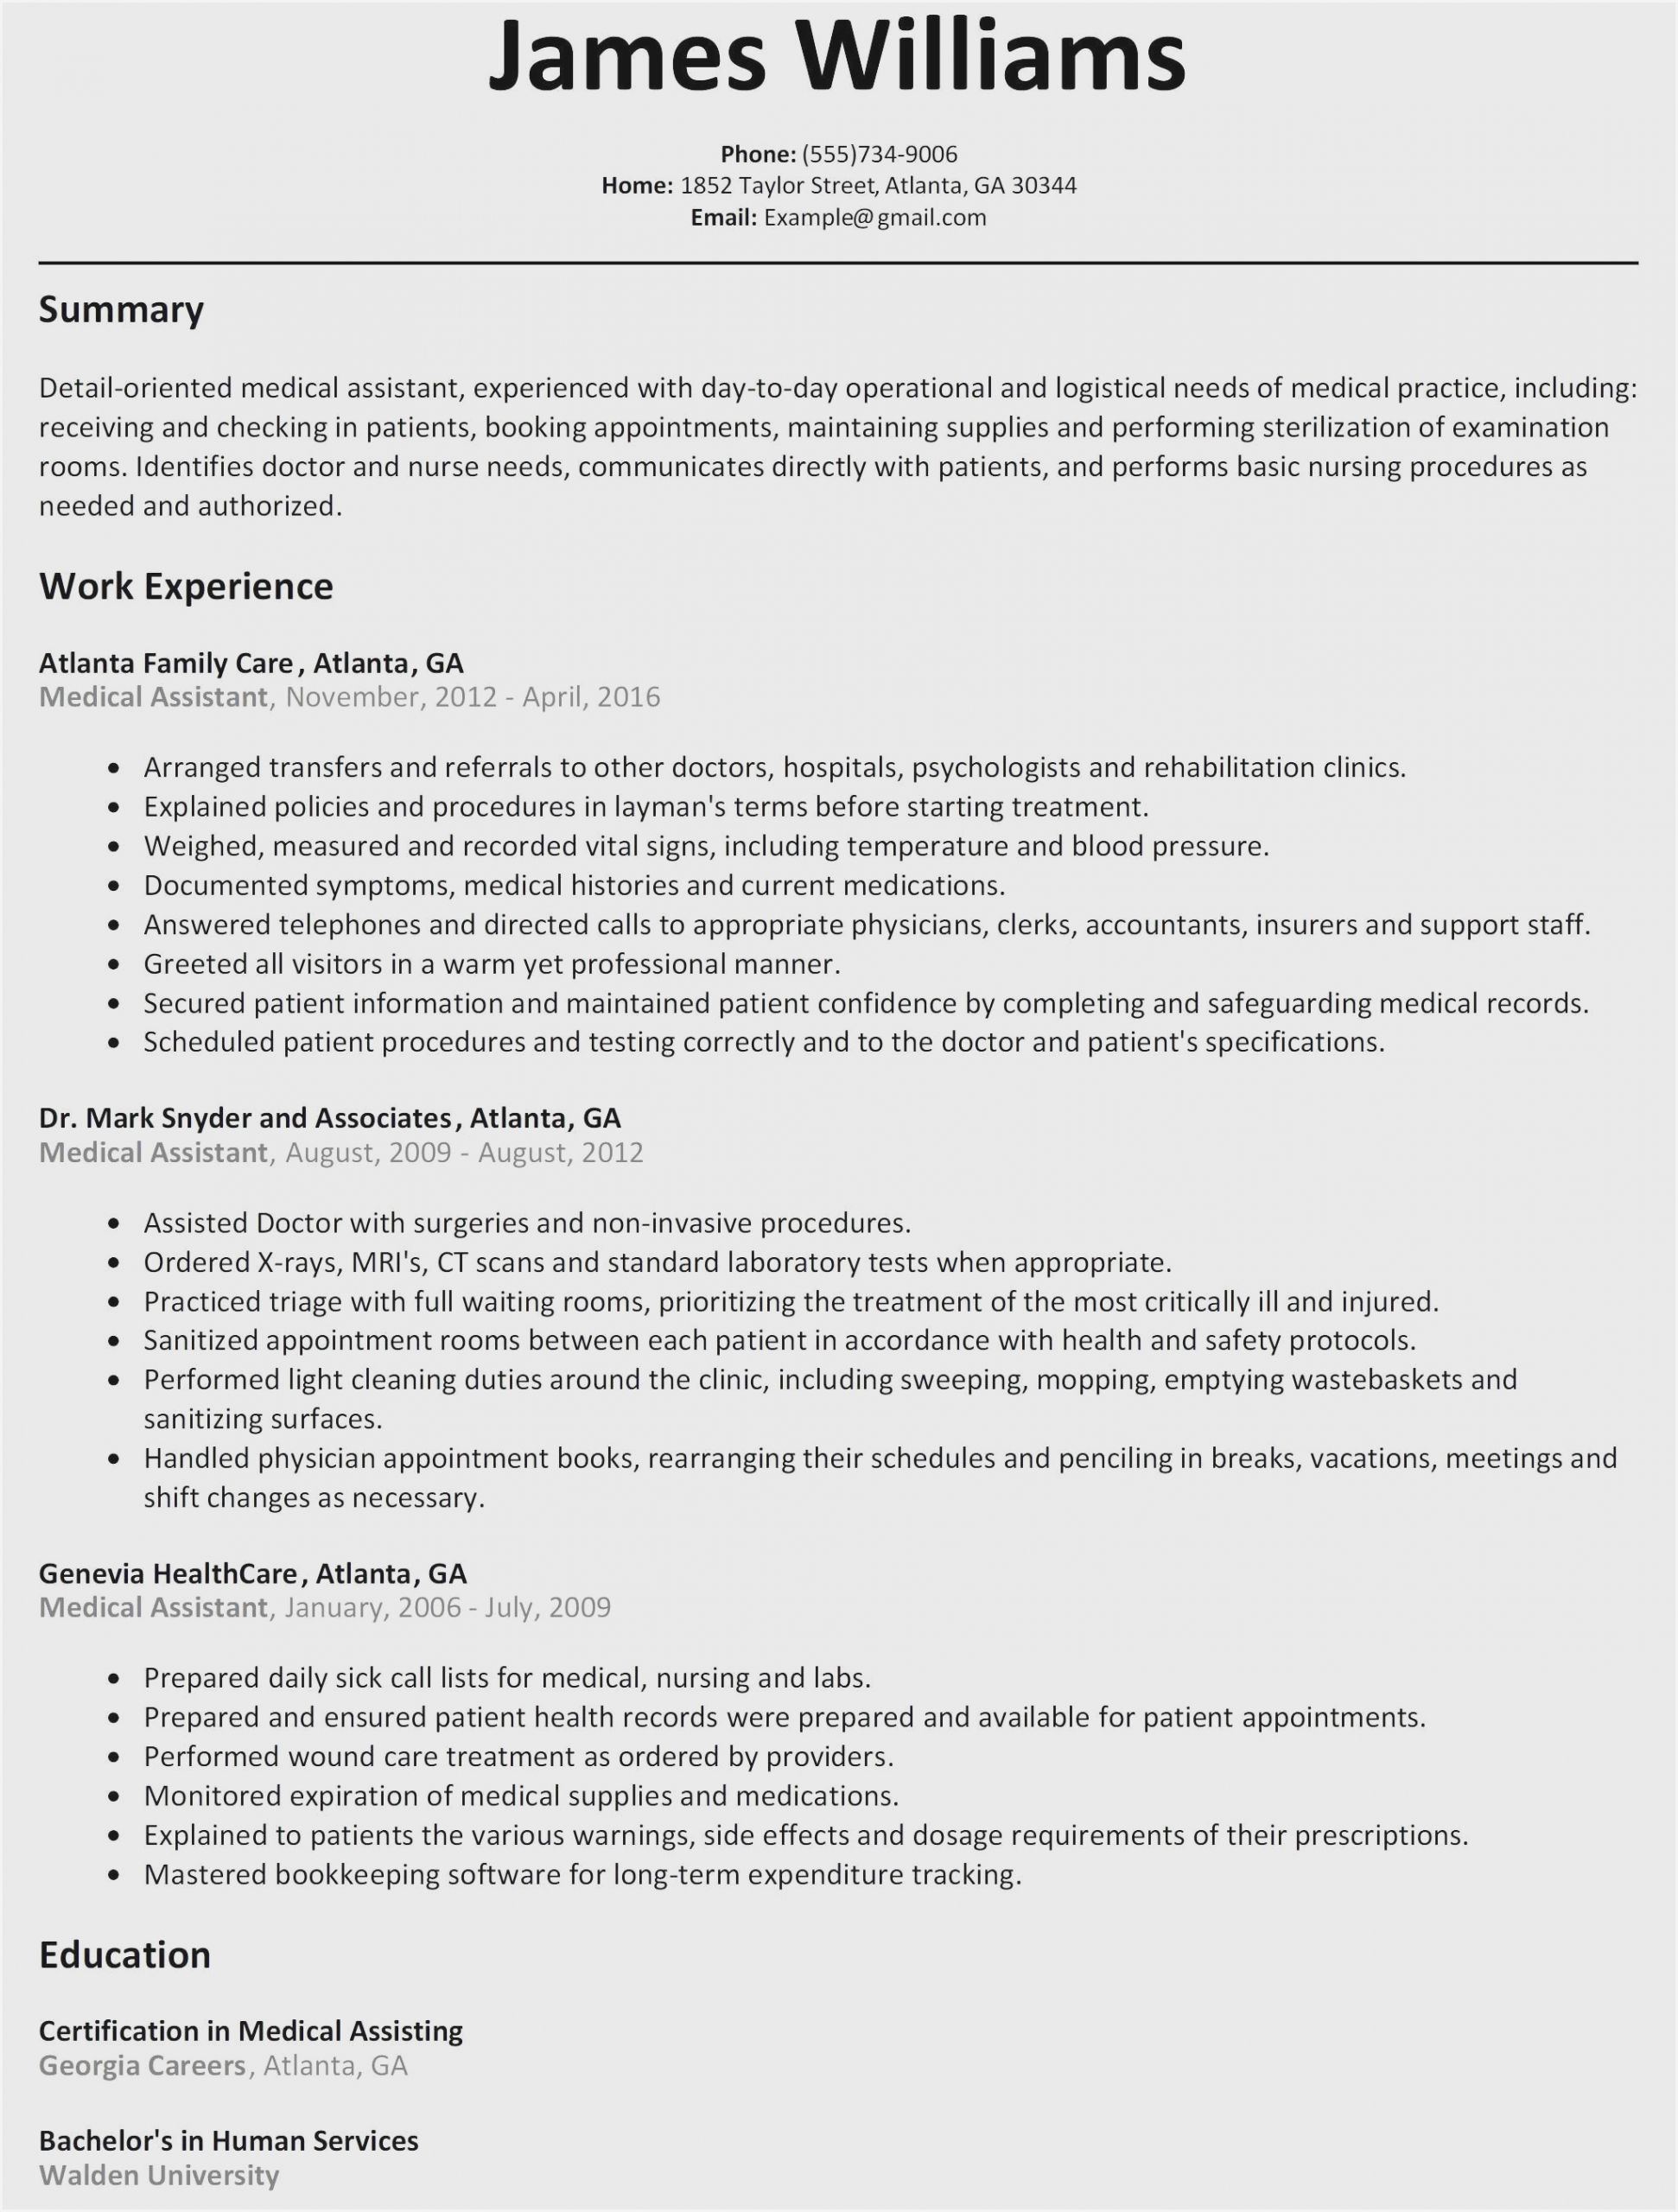 accountant resume sample free chartered format scaled objective examples for software Resume Chartered Accountant Resume Format Download